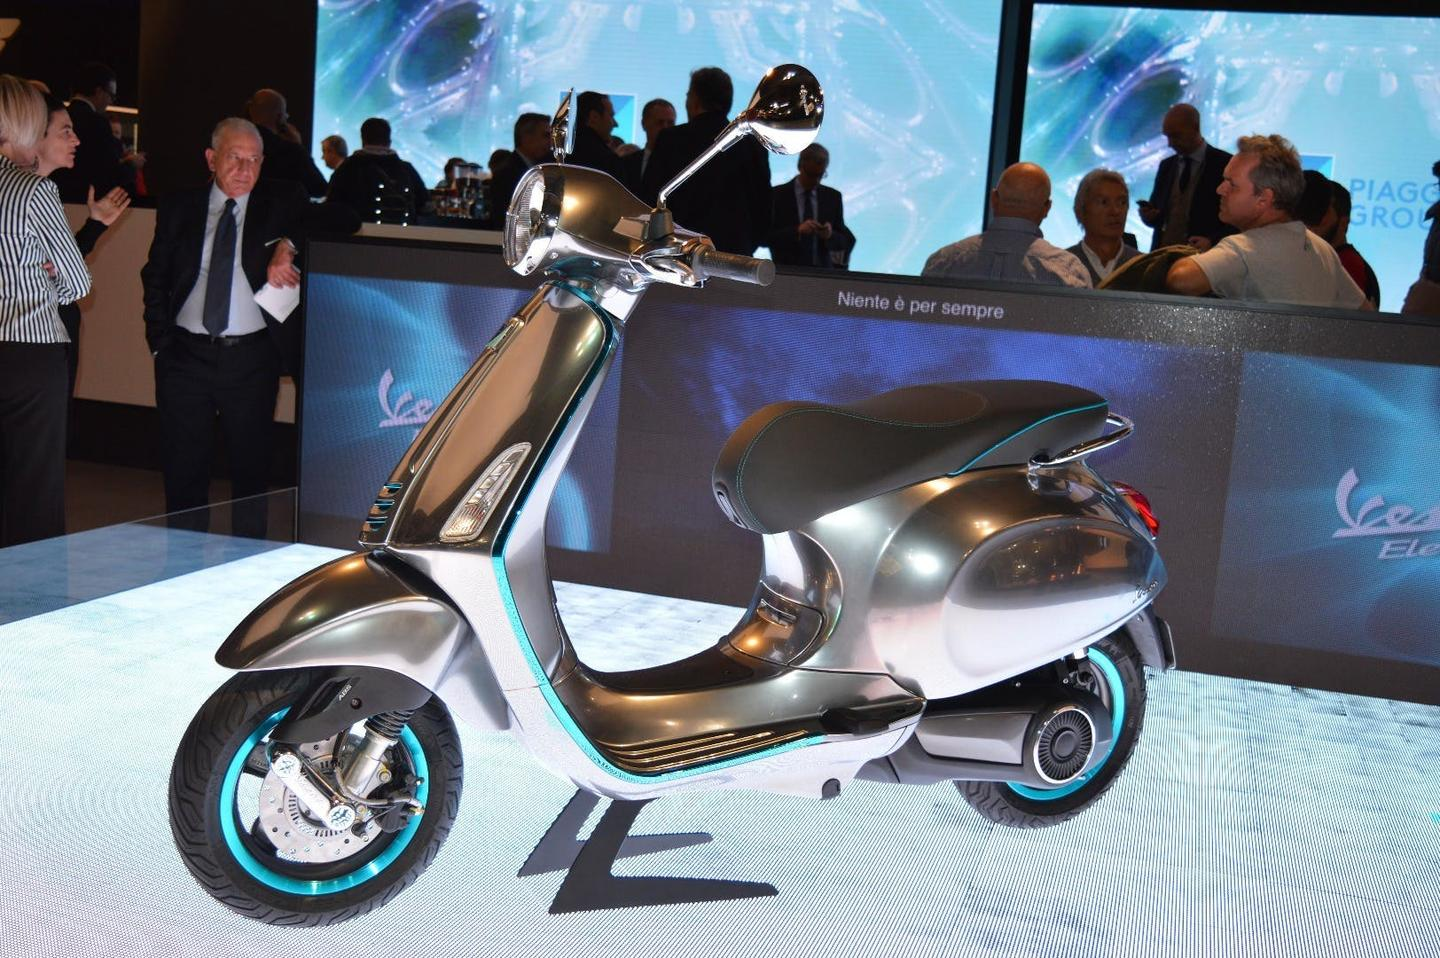 Piaggio Puts A Price On Its Electric Vespa And Starts Taking